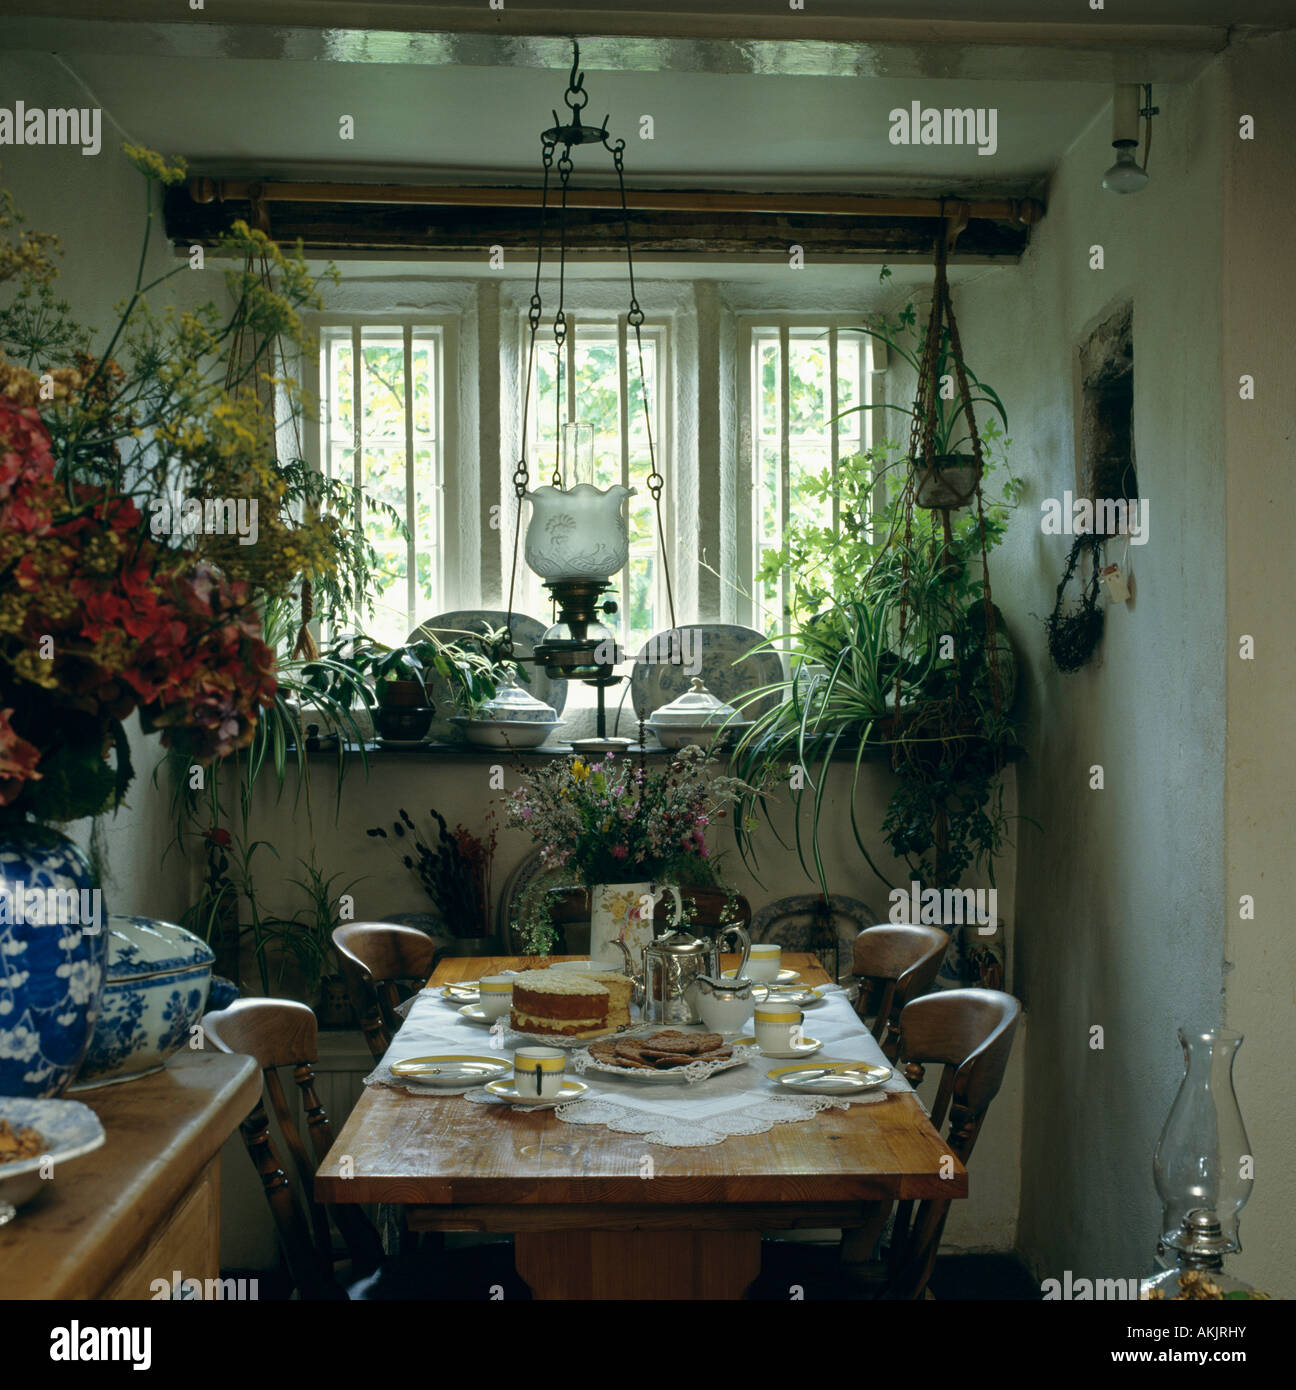 Victorian Ceiling Lamp And Green Houseplants In Small Cottage